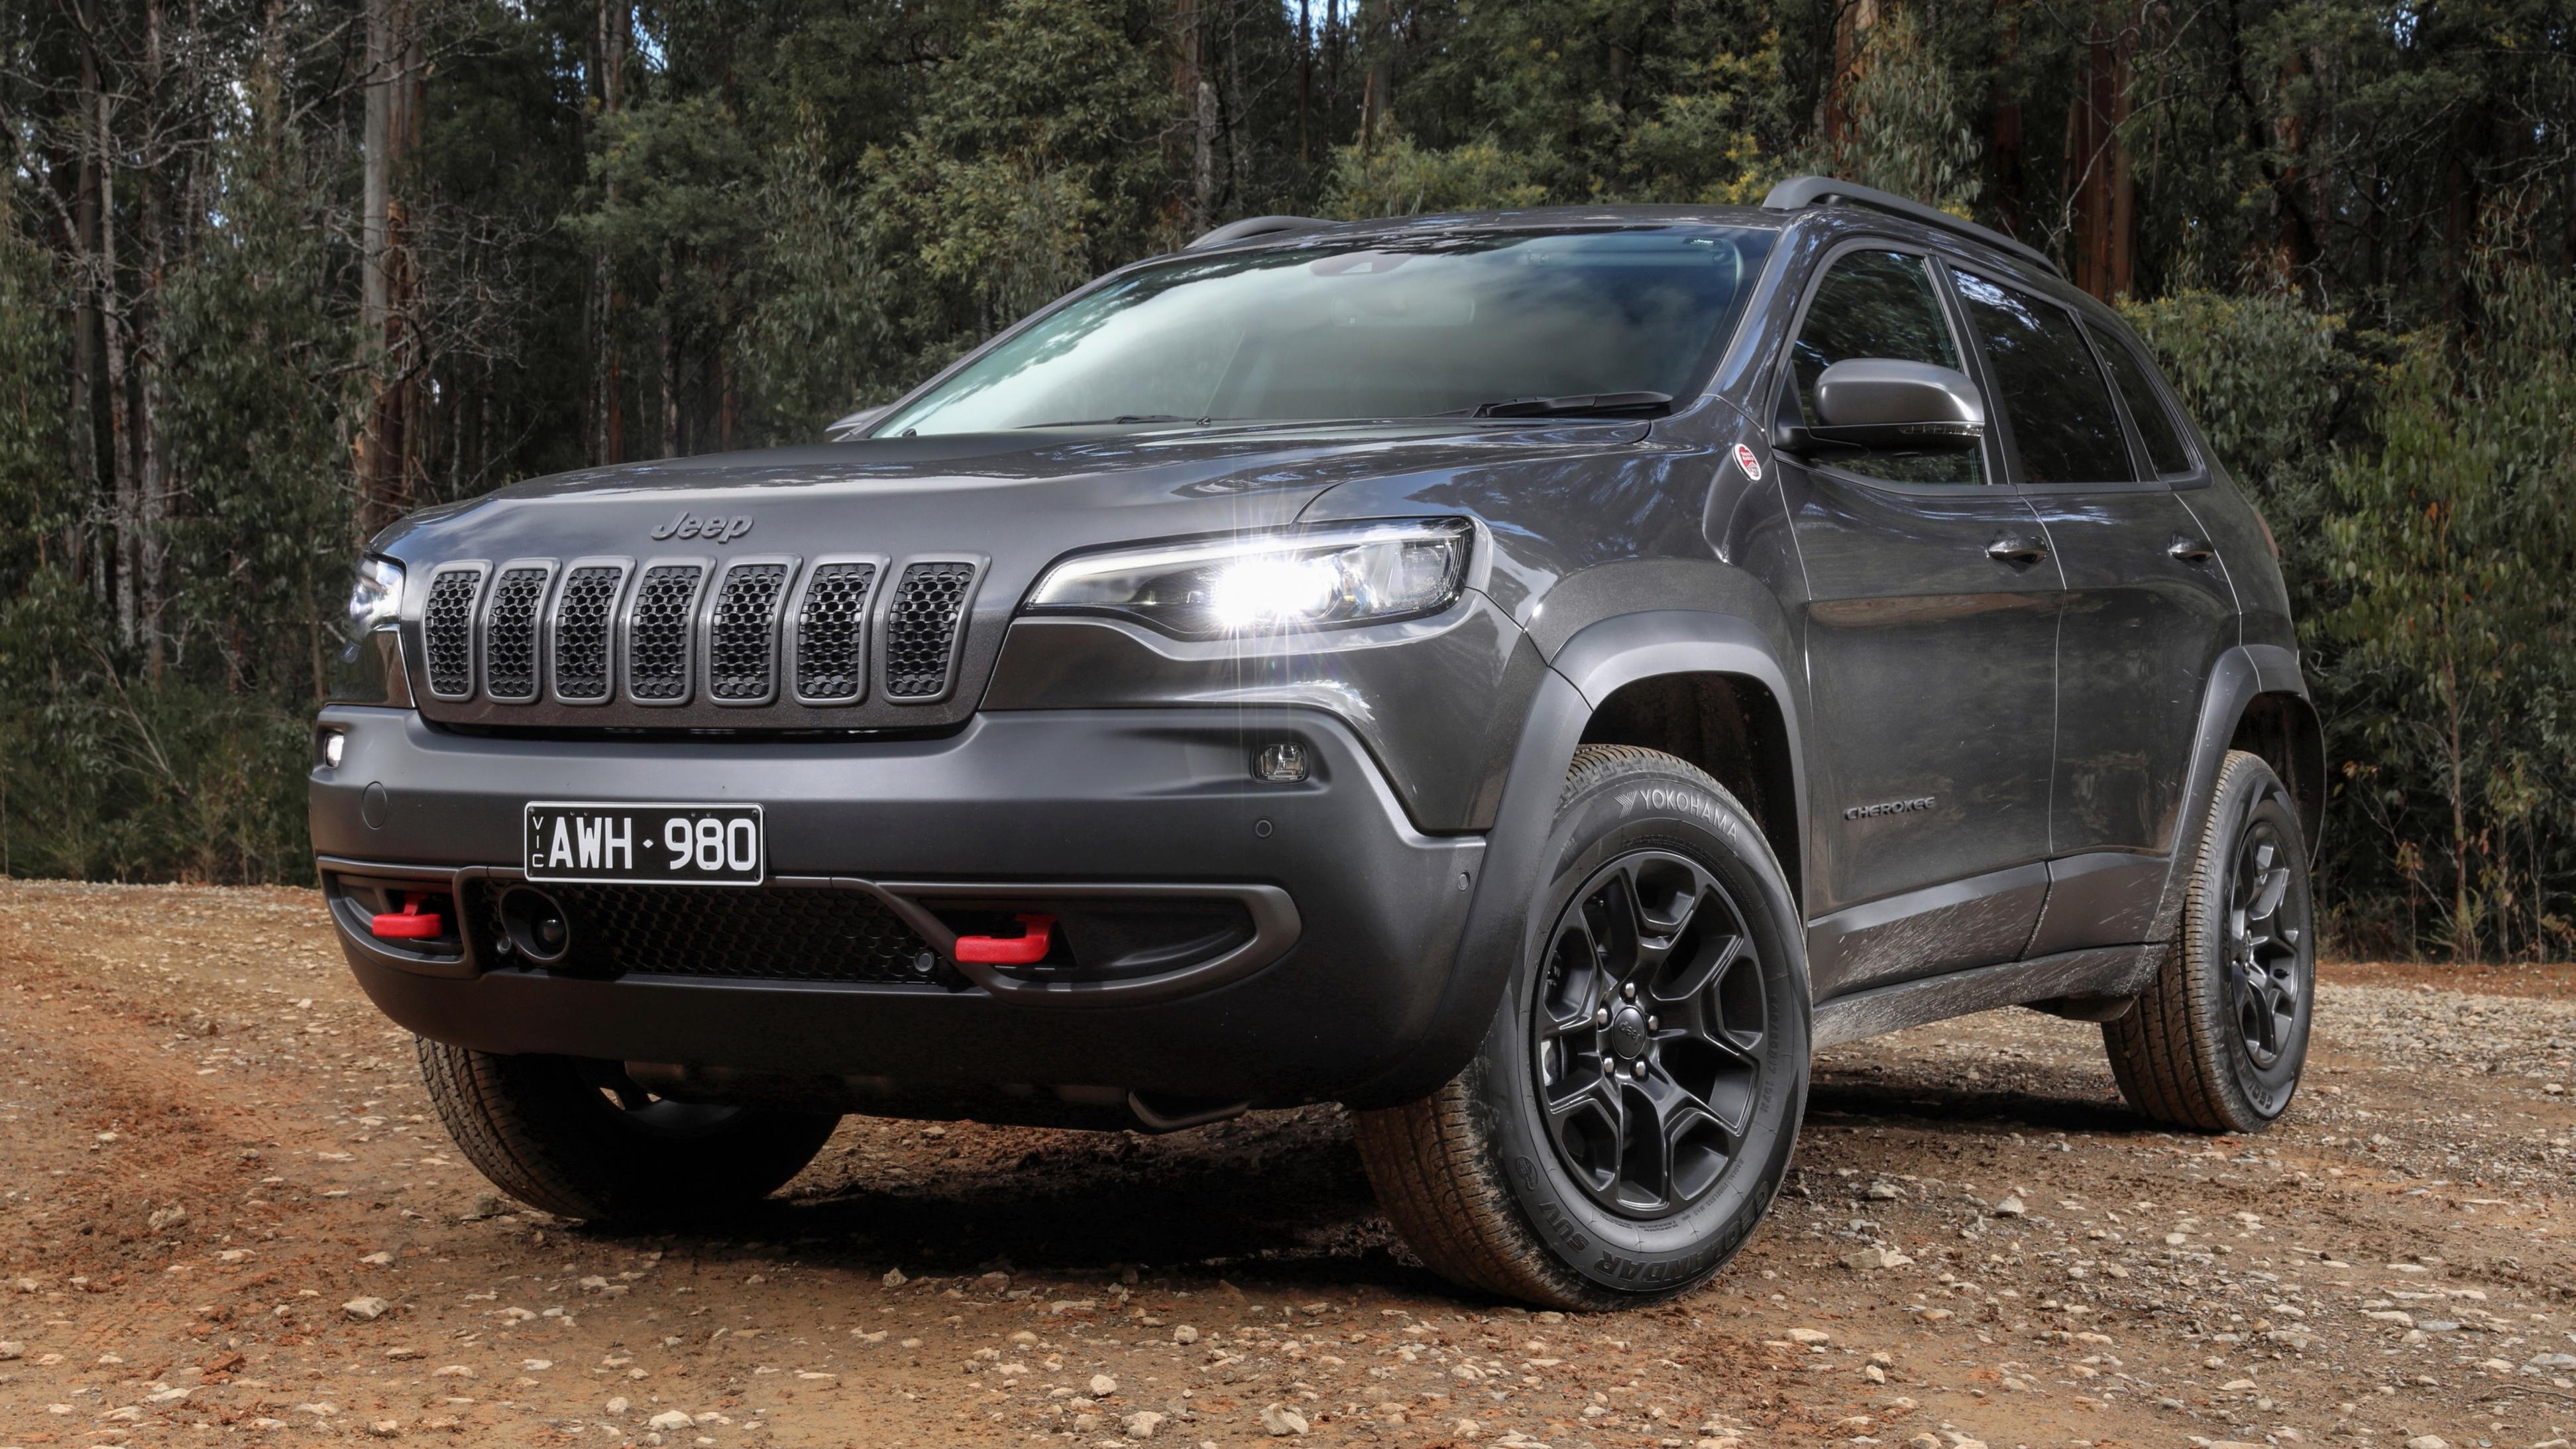 Jeep Cherokee replacement not due until 2025 - report